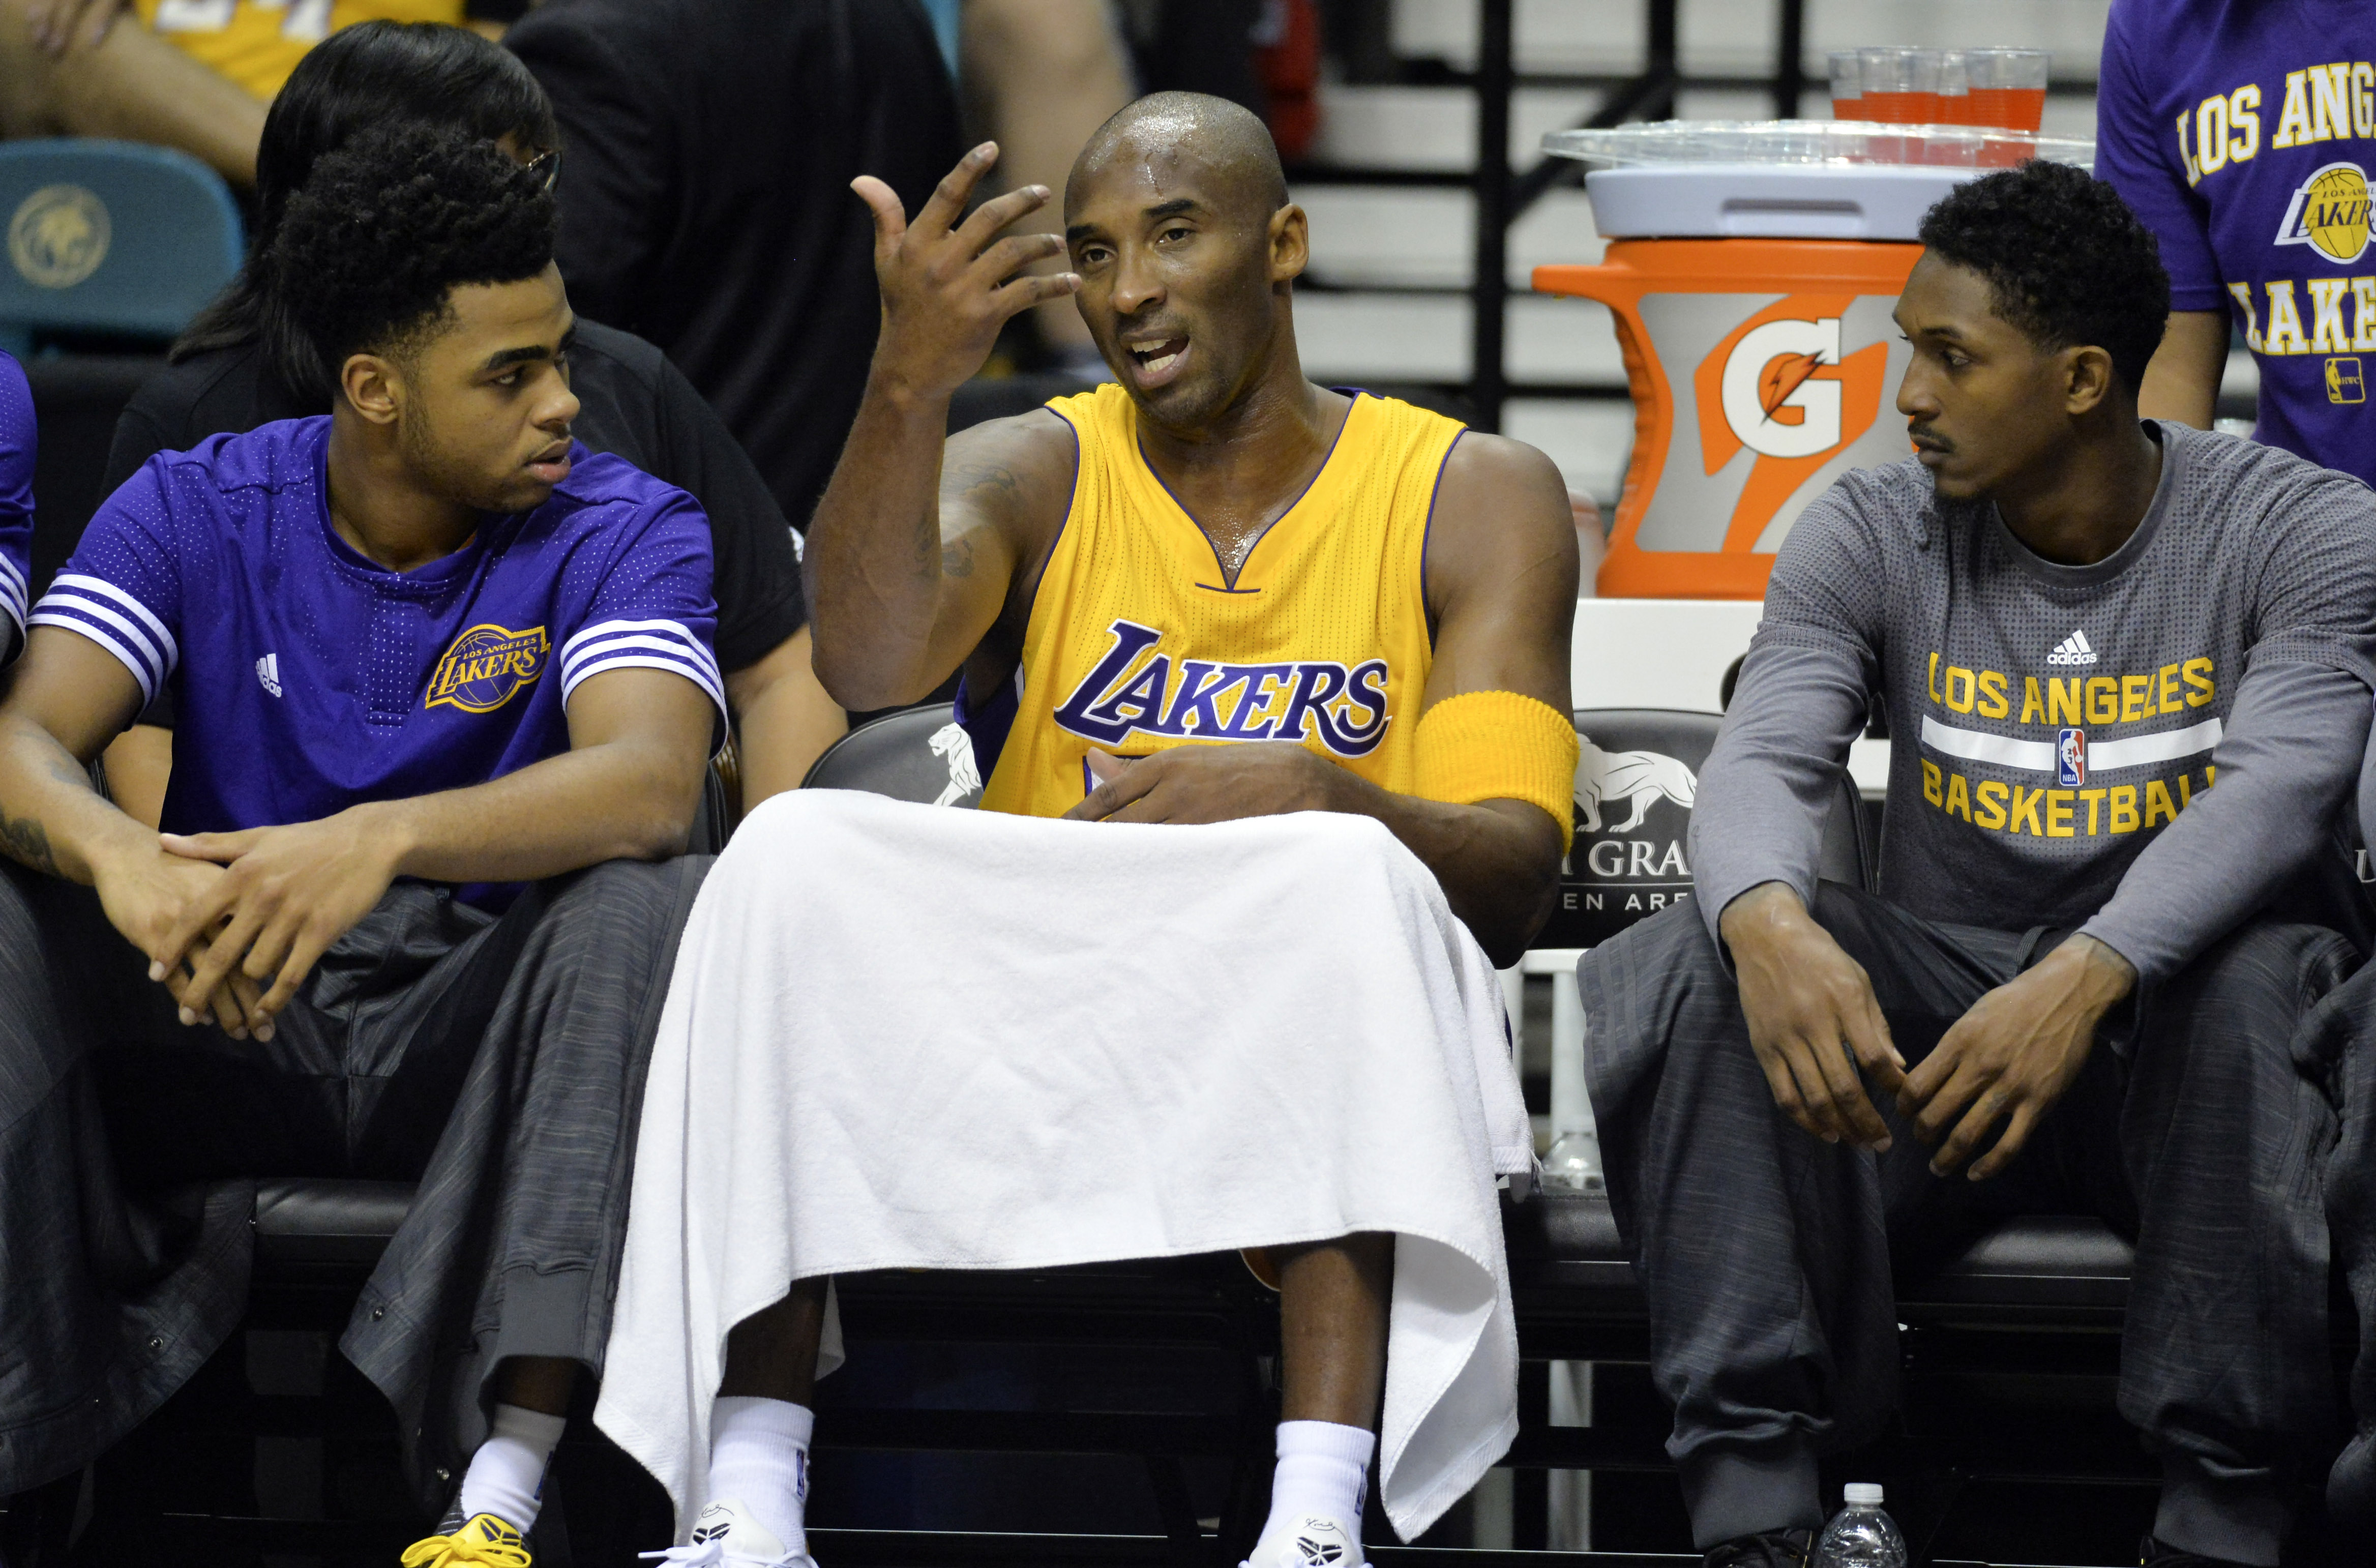 Kobe doesn't understand advanced stats, but you can...